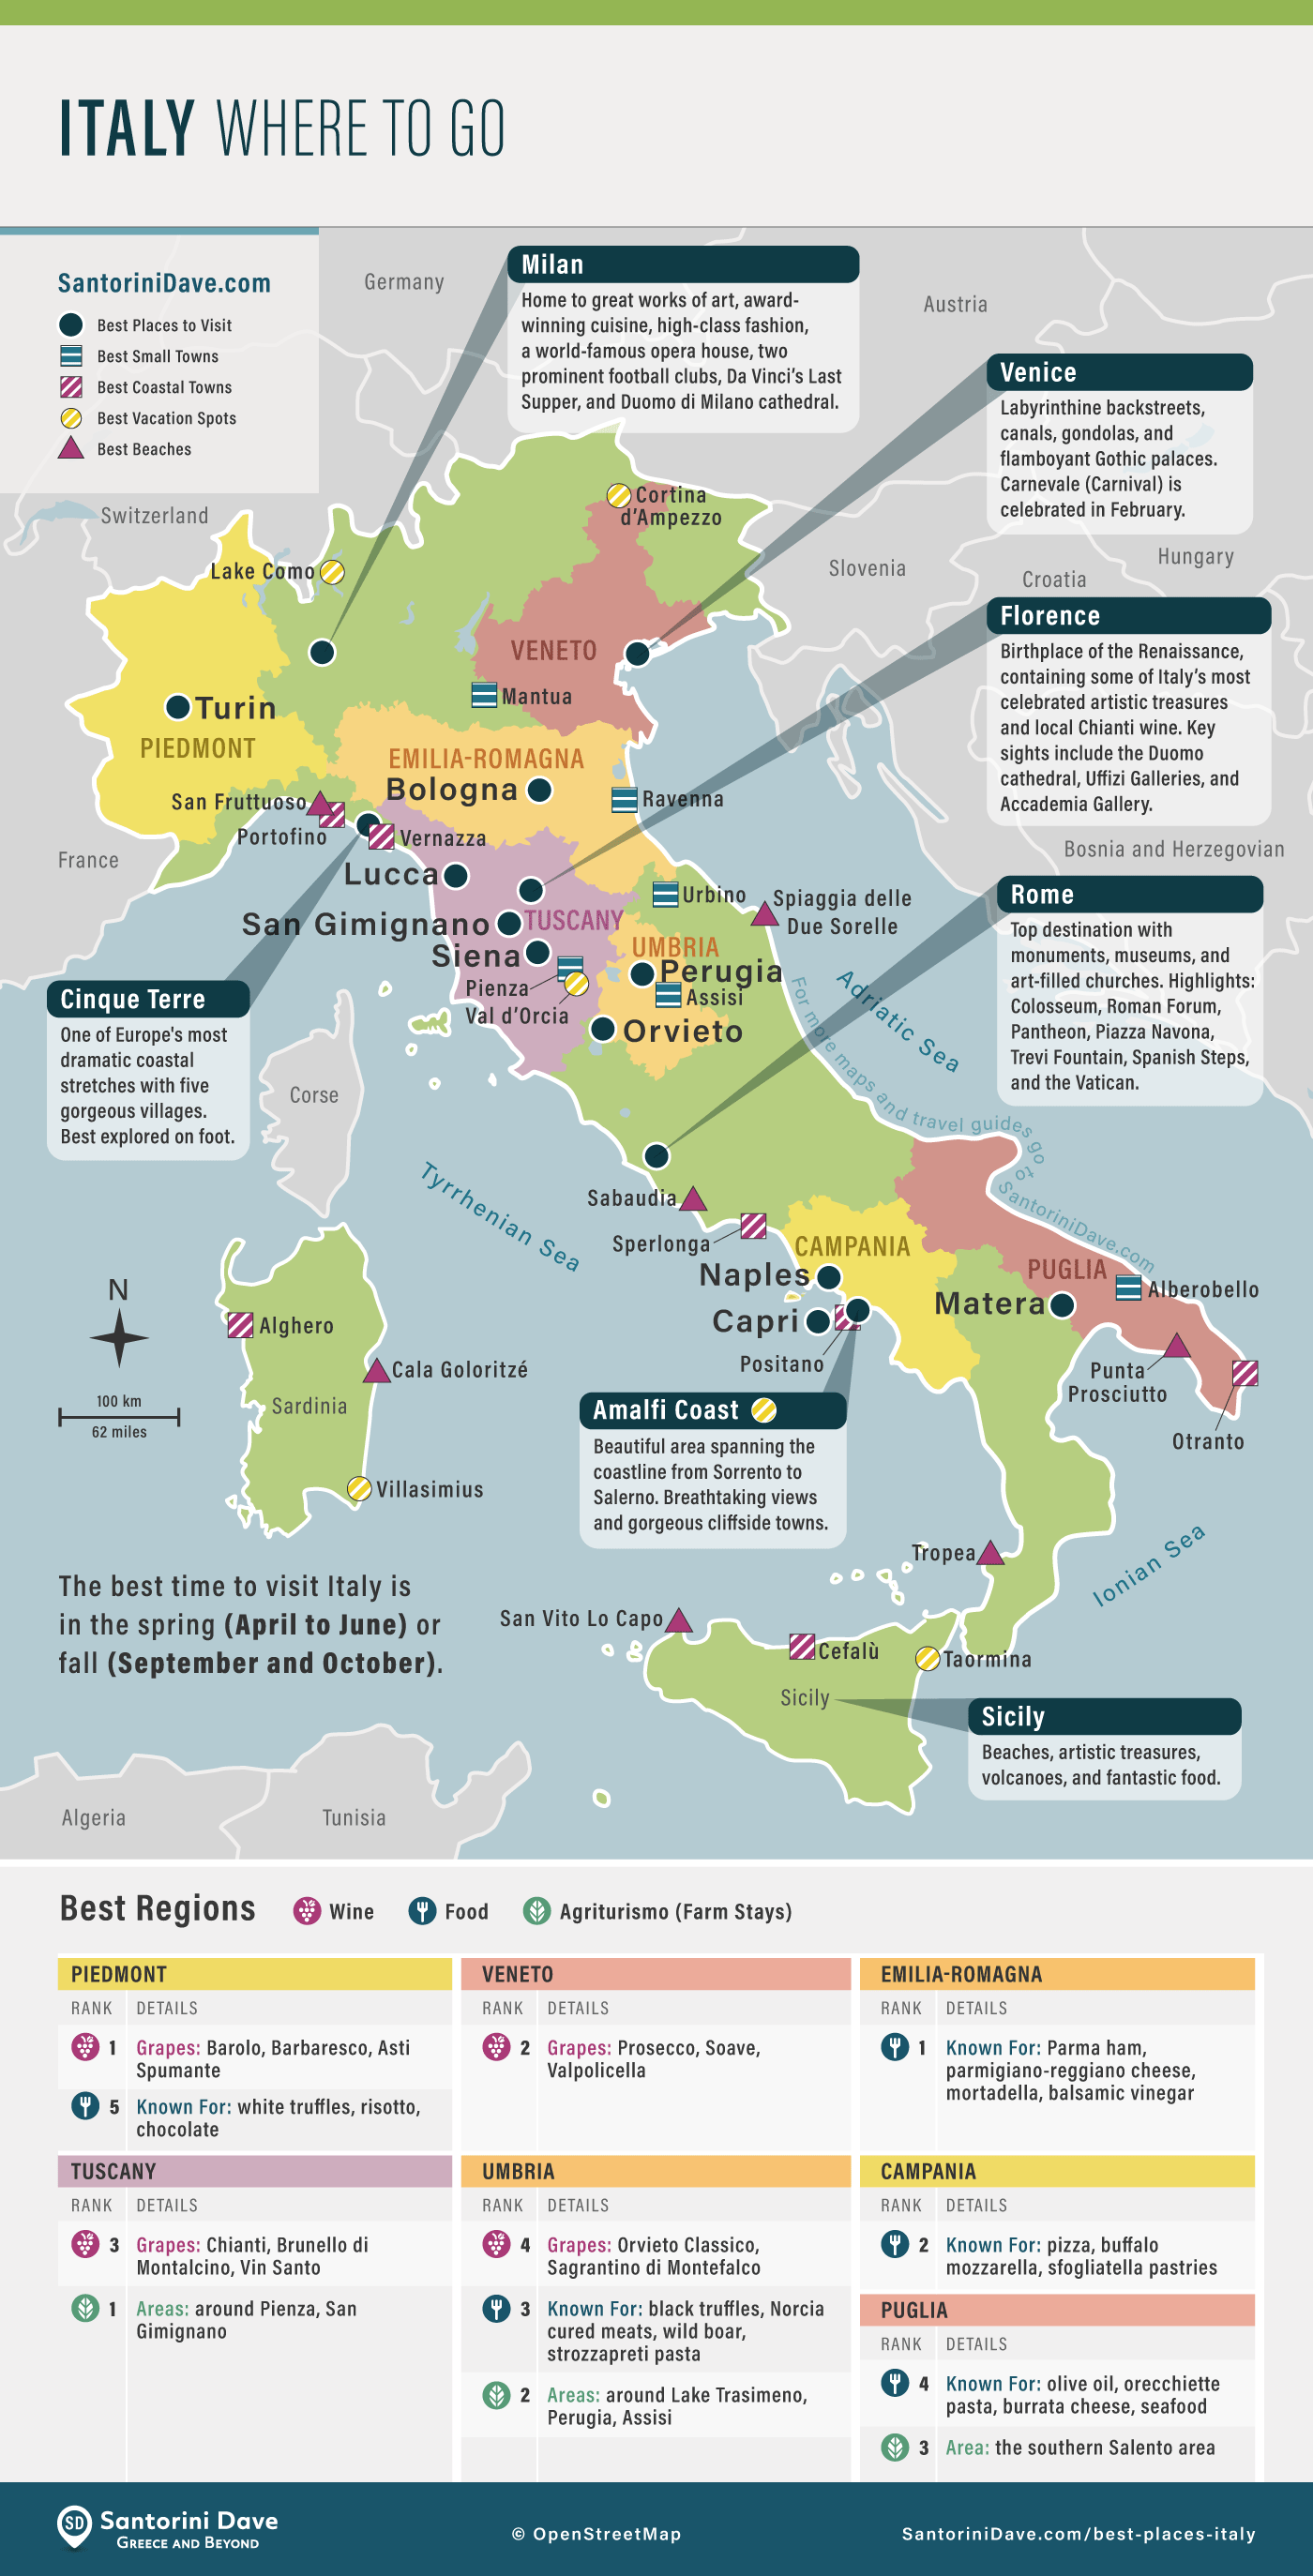 Map showing the best towns, beaches, and vacation spots to visit in Italy